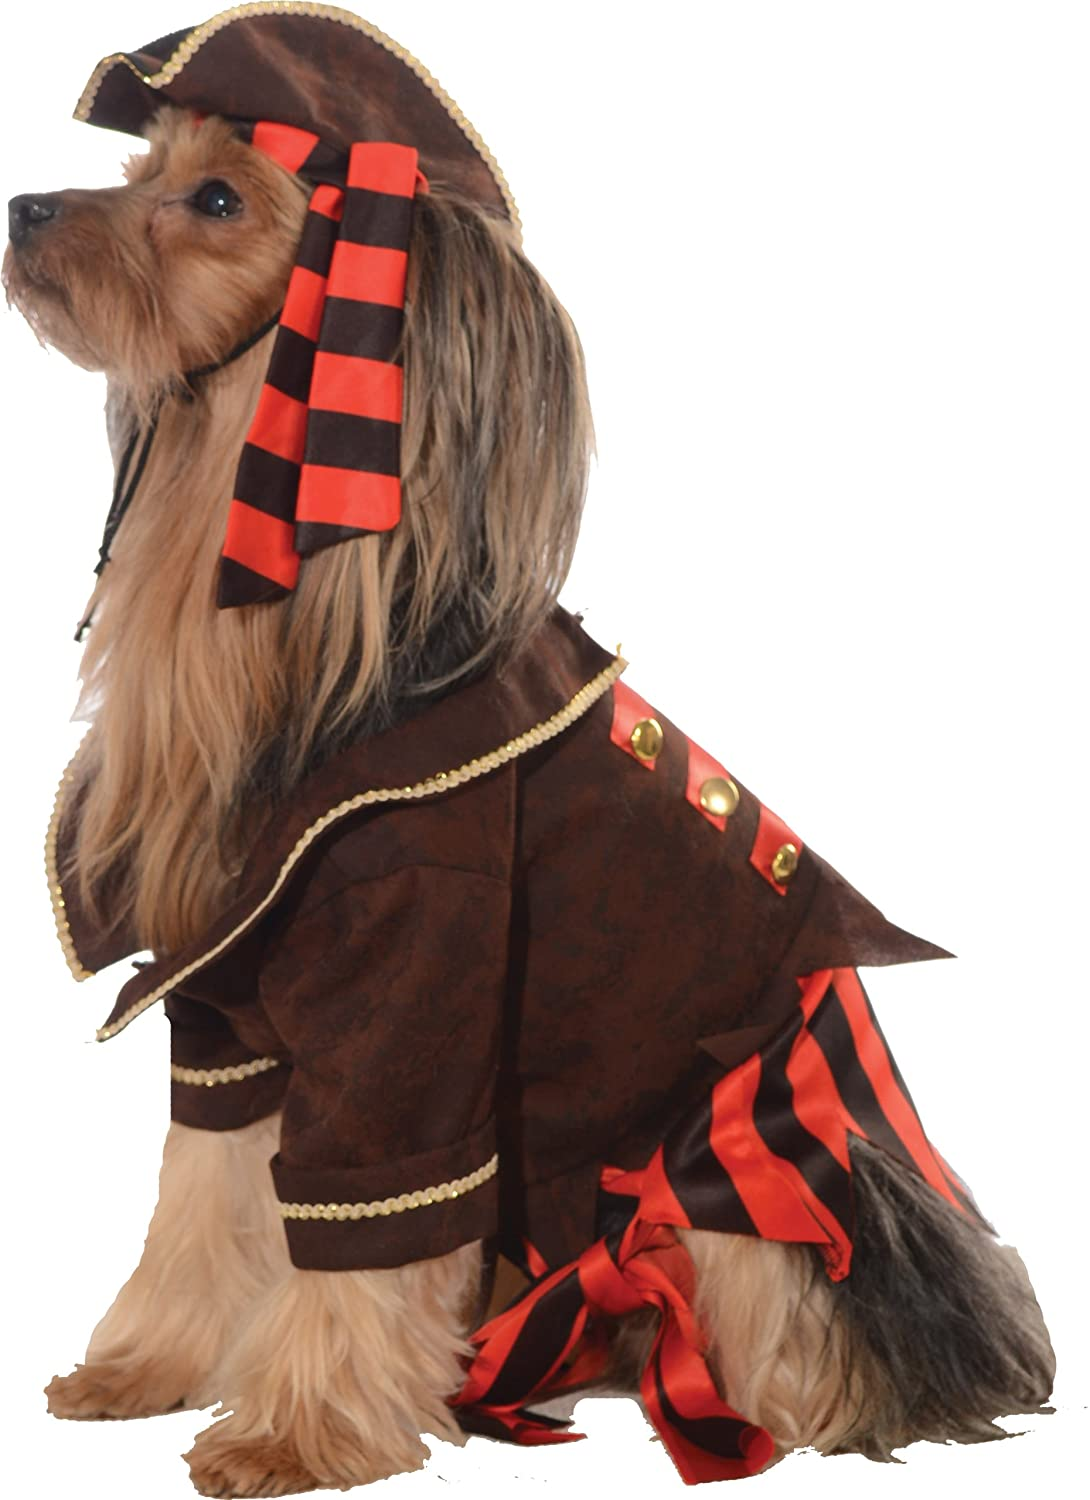 sc 1 st  Amazon.com & Amazon.com : Rubieu0027s Big Dog Pirate Boy Dog Costume : Pet Supplies